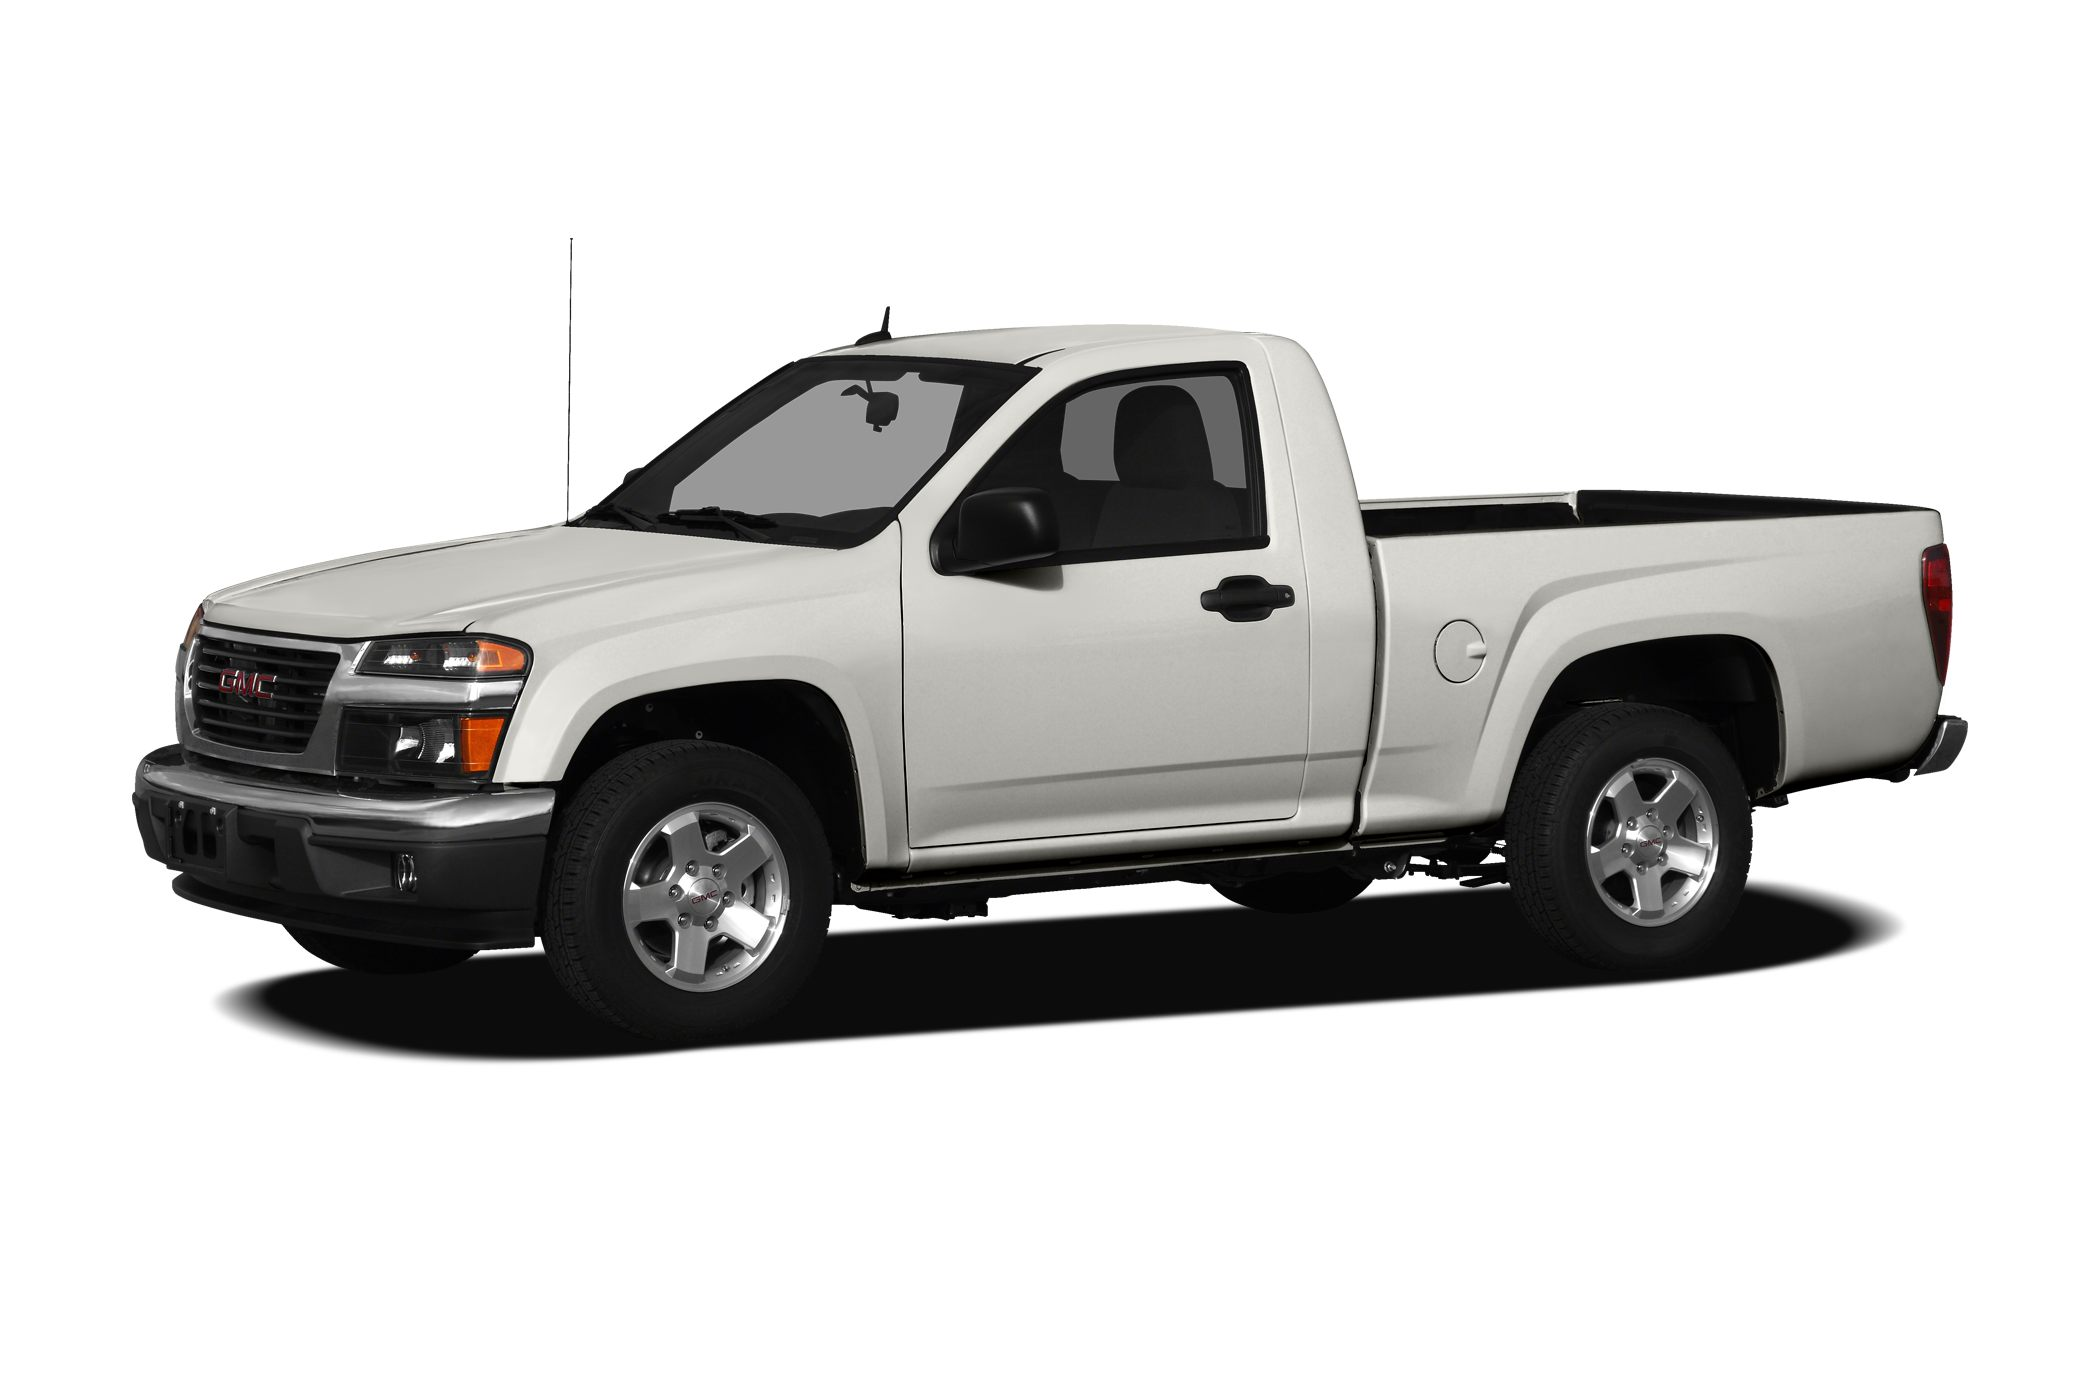 2011 GMC Canyon SLE Crew Cab Pickup for sale in Newark for $0 with 0 miles